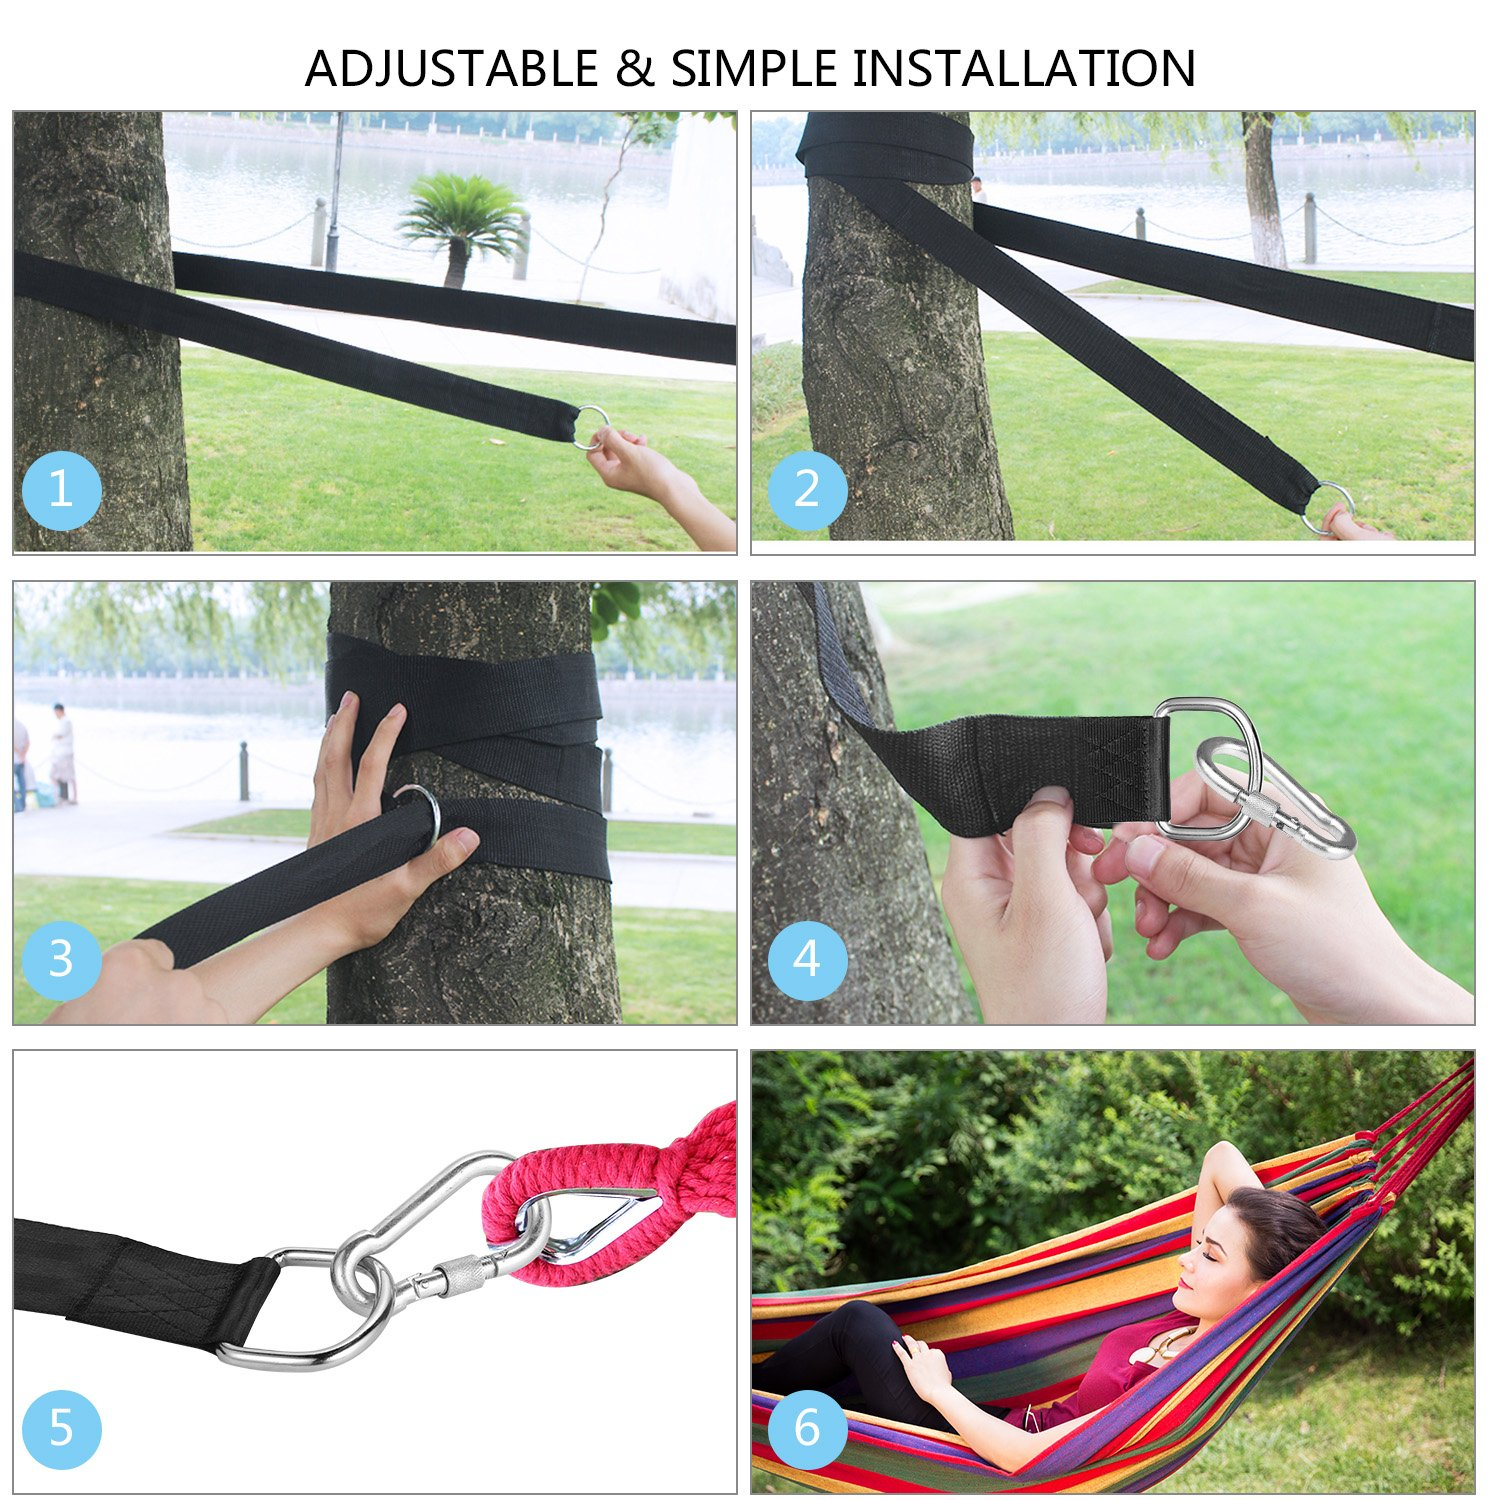 iqnbxw Tree Hanging Straps, Swing Straps with 2 Heavy Duty Safety Lock Carabiner Hooks & D-Rings, Polyester Straps Perfect for Hammock Hanging Kit Straps, ...